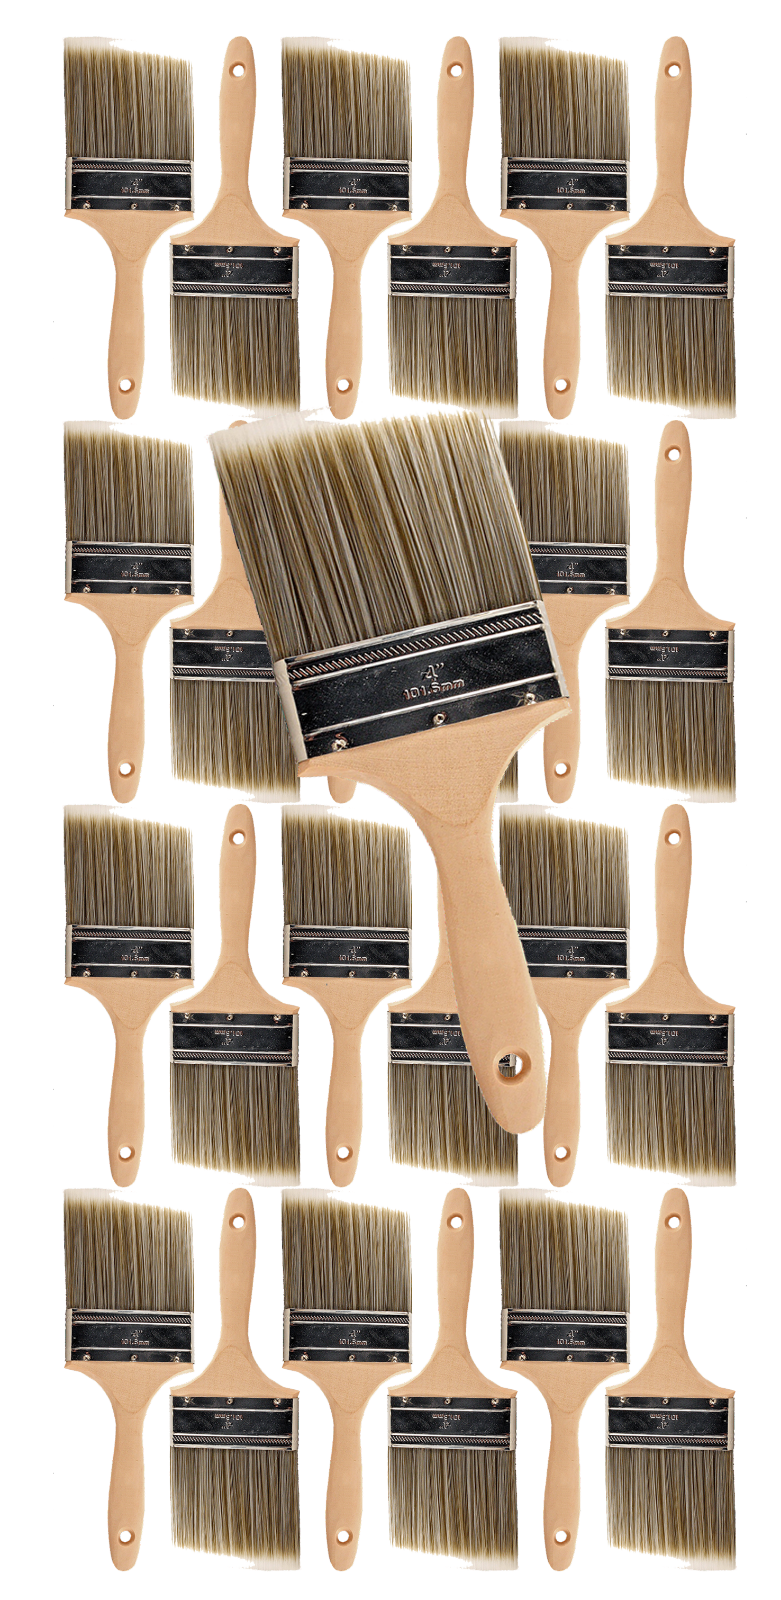 24PK 4  Flat House Wall,Trim Paint Brush Set Home Exterior or Interior Brushes